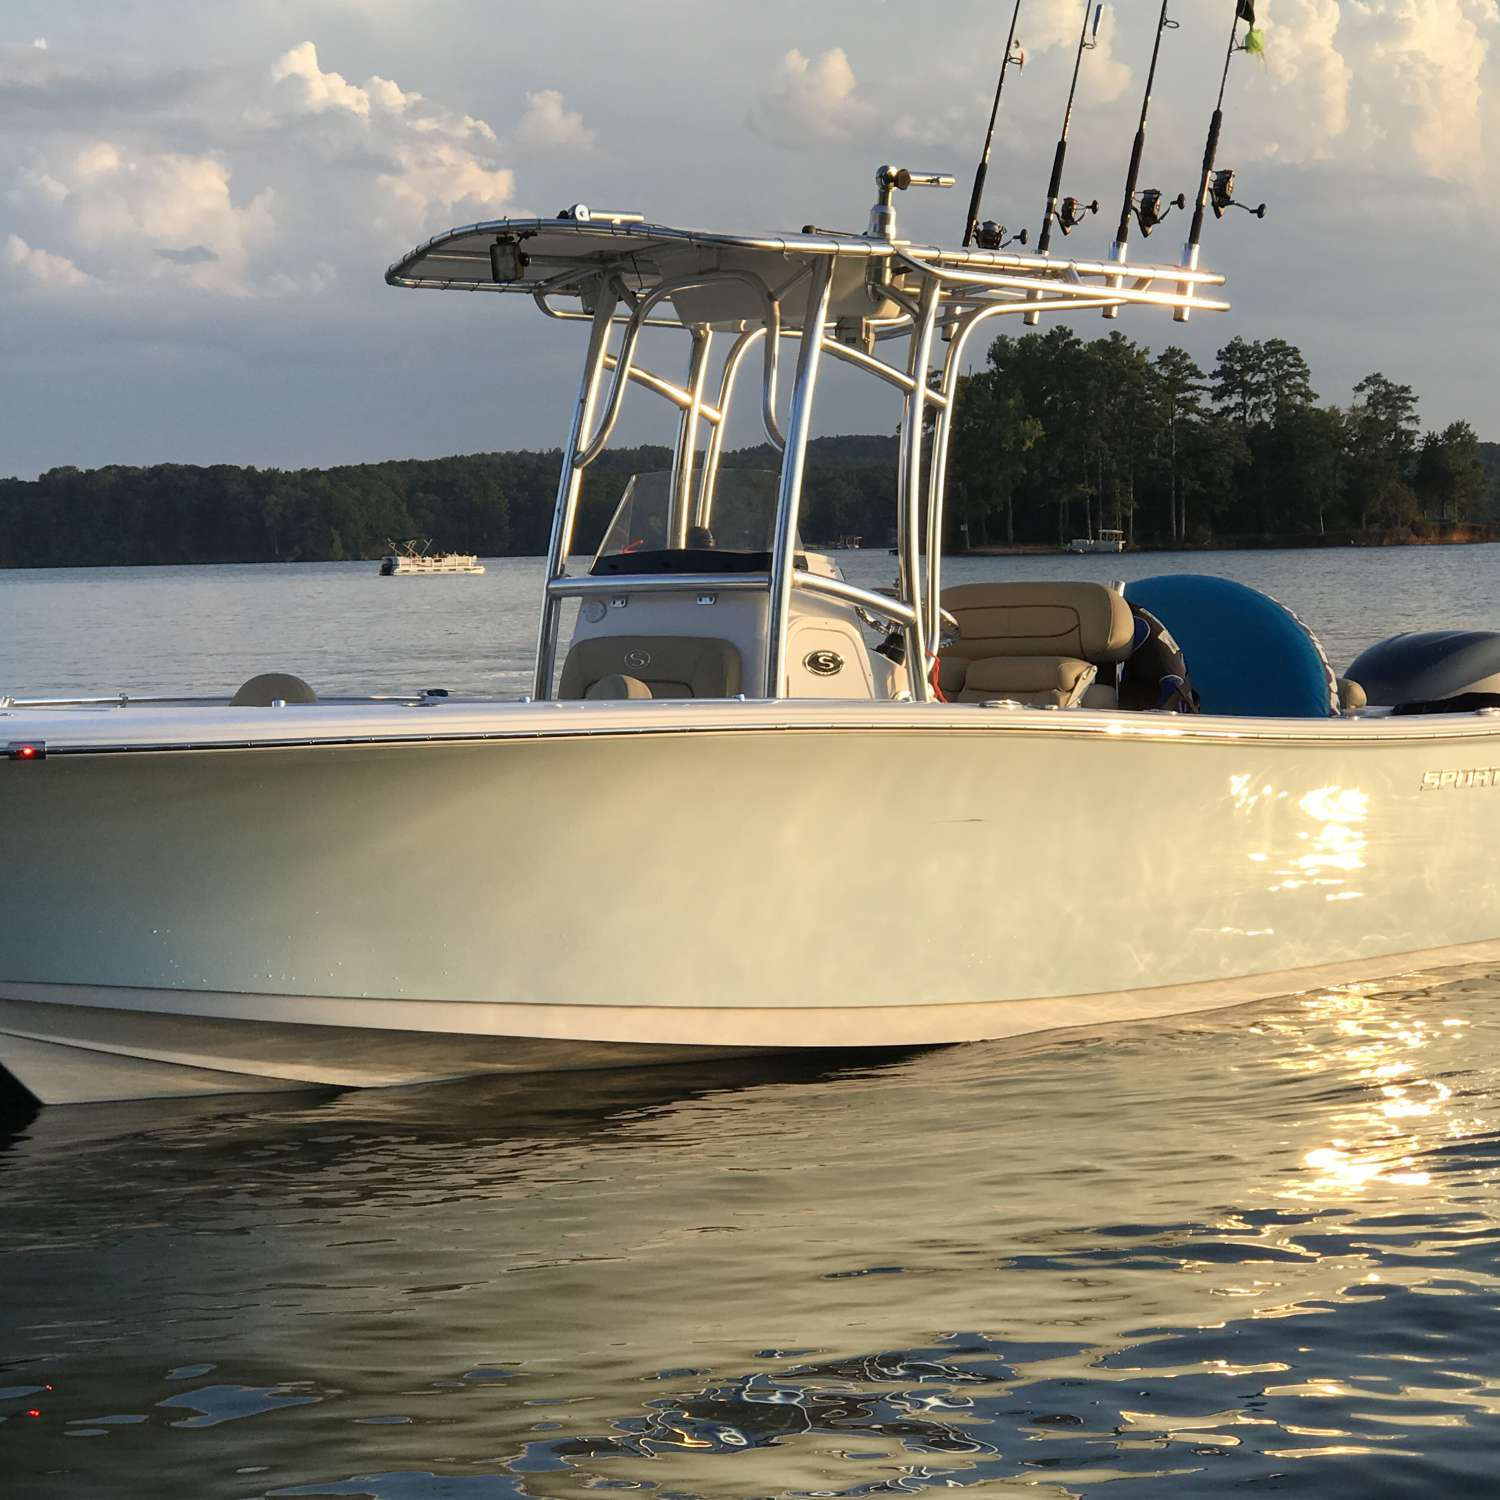 Title: Marco Polo Ii - On board their Sportsman Open 232 Center Console - Location: Sumter, South Carolina. Participating in the Photo Contest #SportsmanSeptember2017